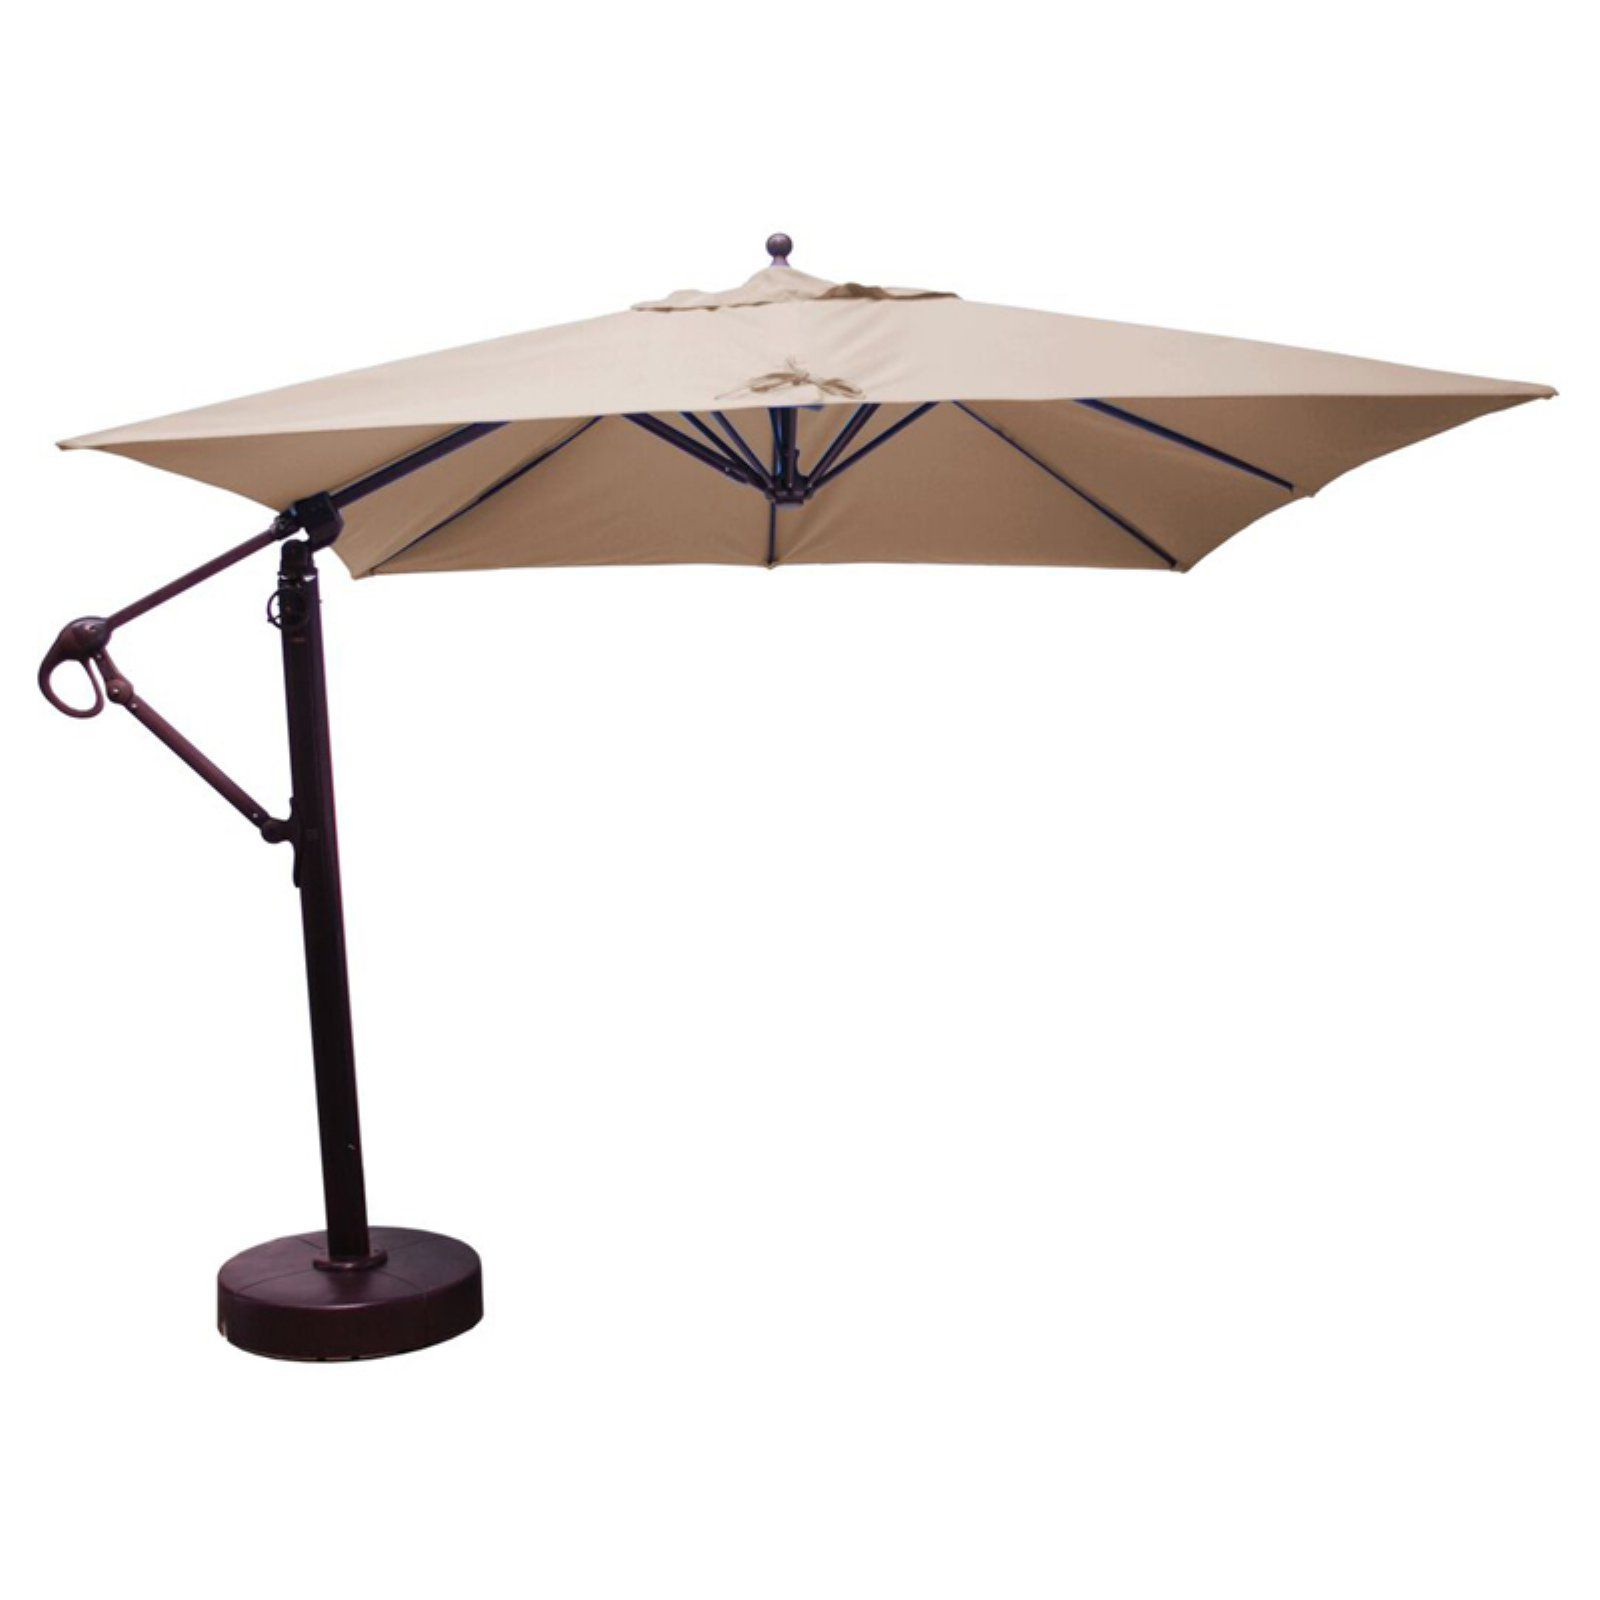 Galtech 10 Ft Square Cantilever Sunbrella Aluminum Patio Umbrella With Wheeled Base Forest Green Aluminum Patio Patio Umbrella Cantilever Umbrella